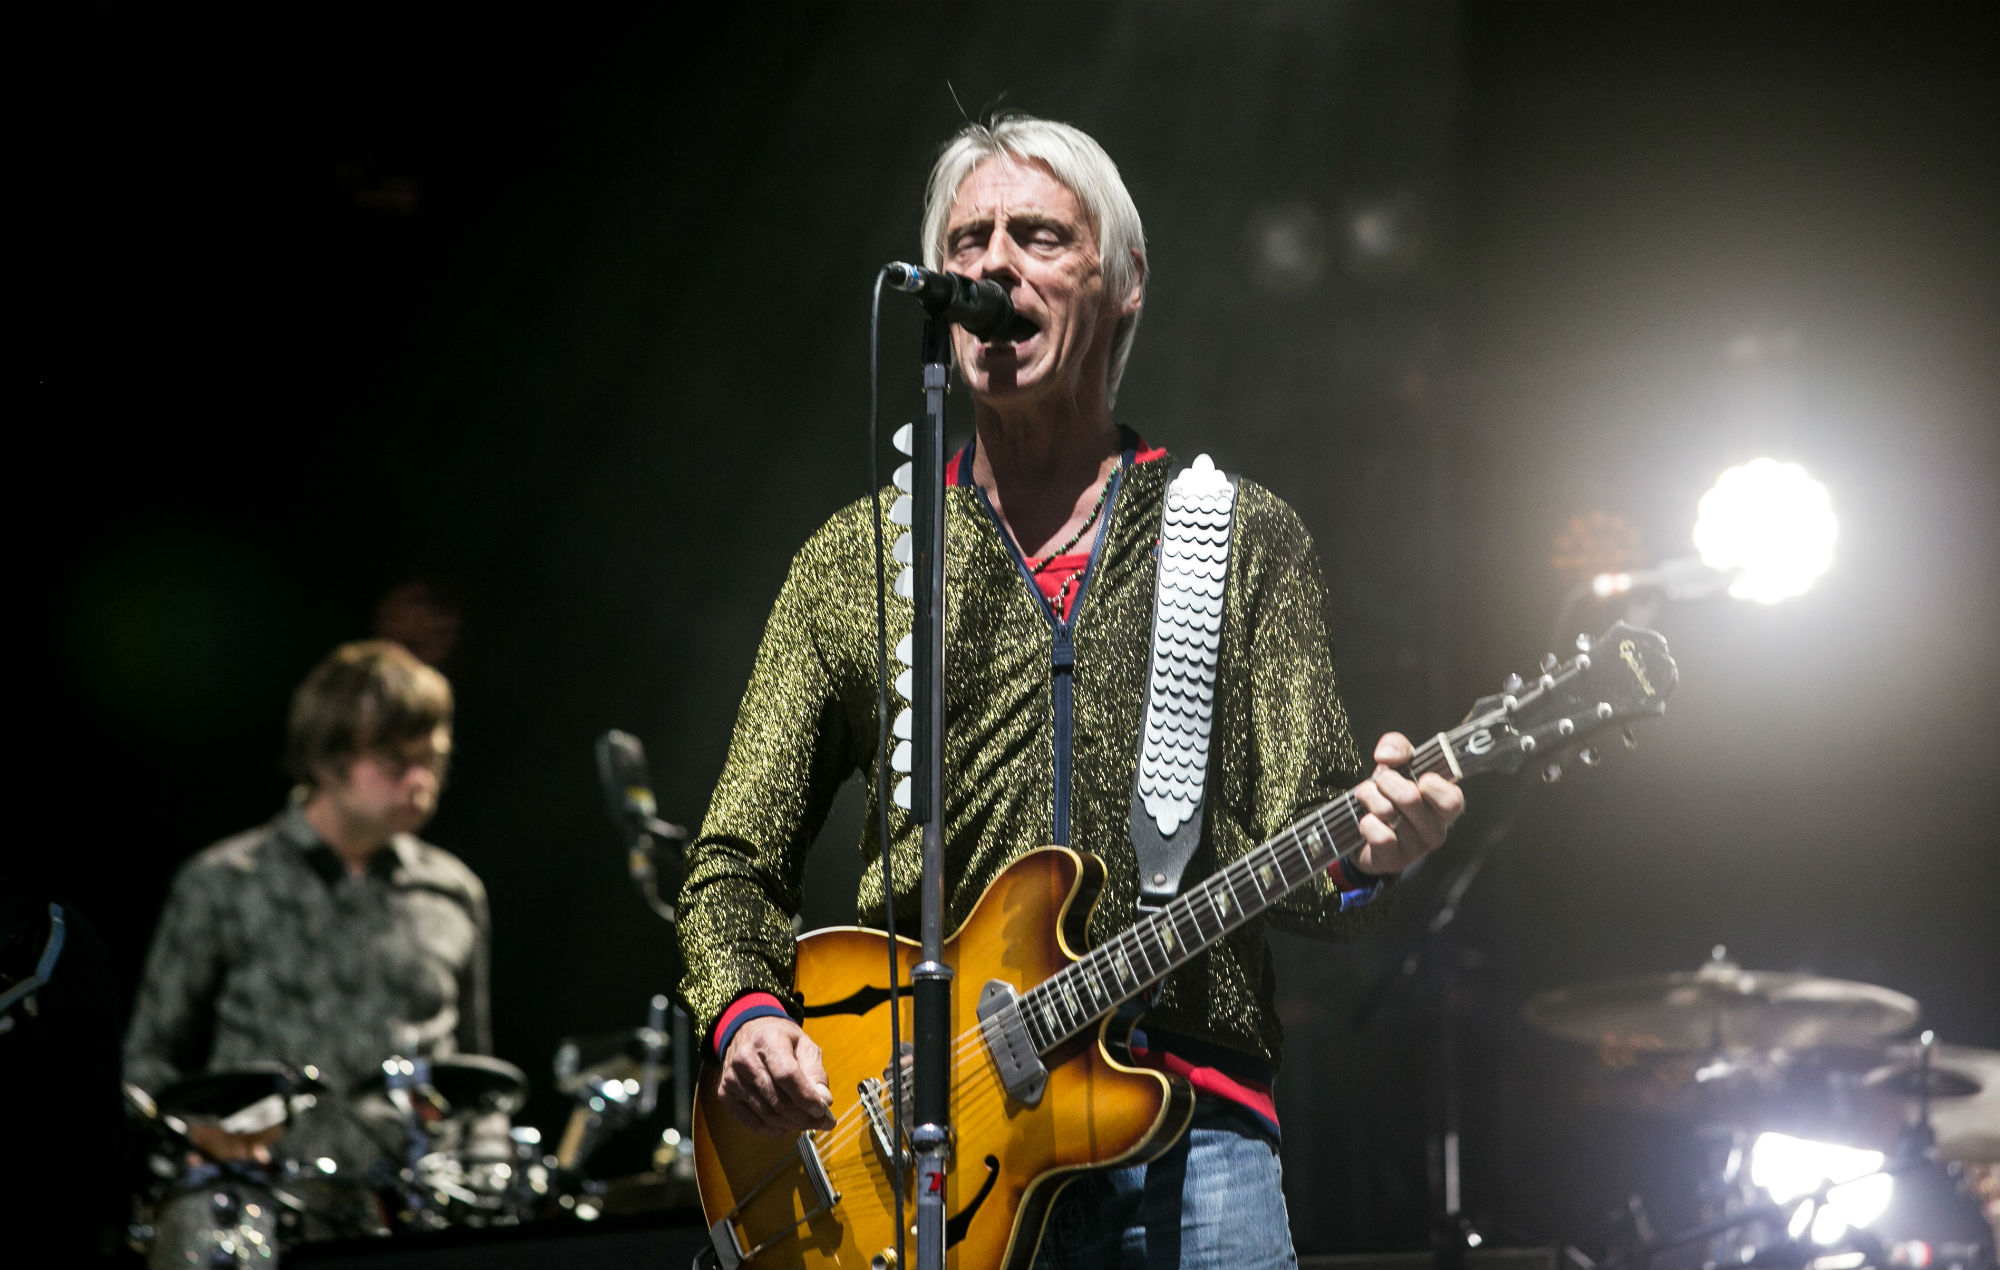 Paul Weller Announces String Of Uk Forest Gigs For Summer 2019